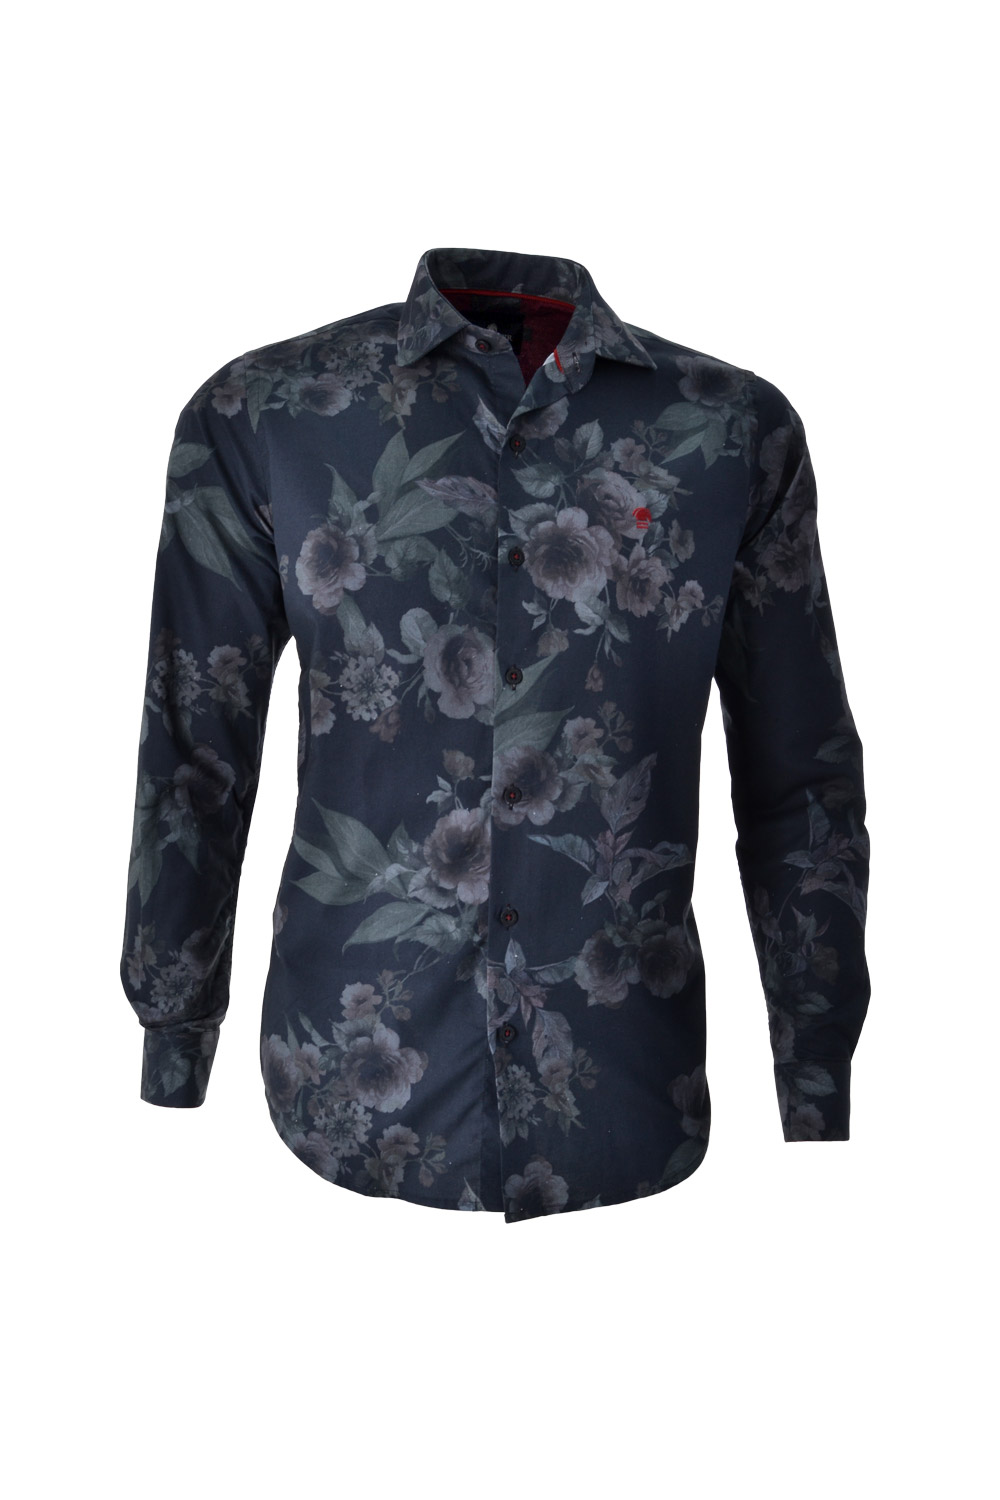 CAMISA ML FASHION ALGODAO FIO TINTO ESTAMPA FLORAL